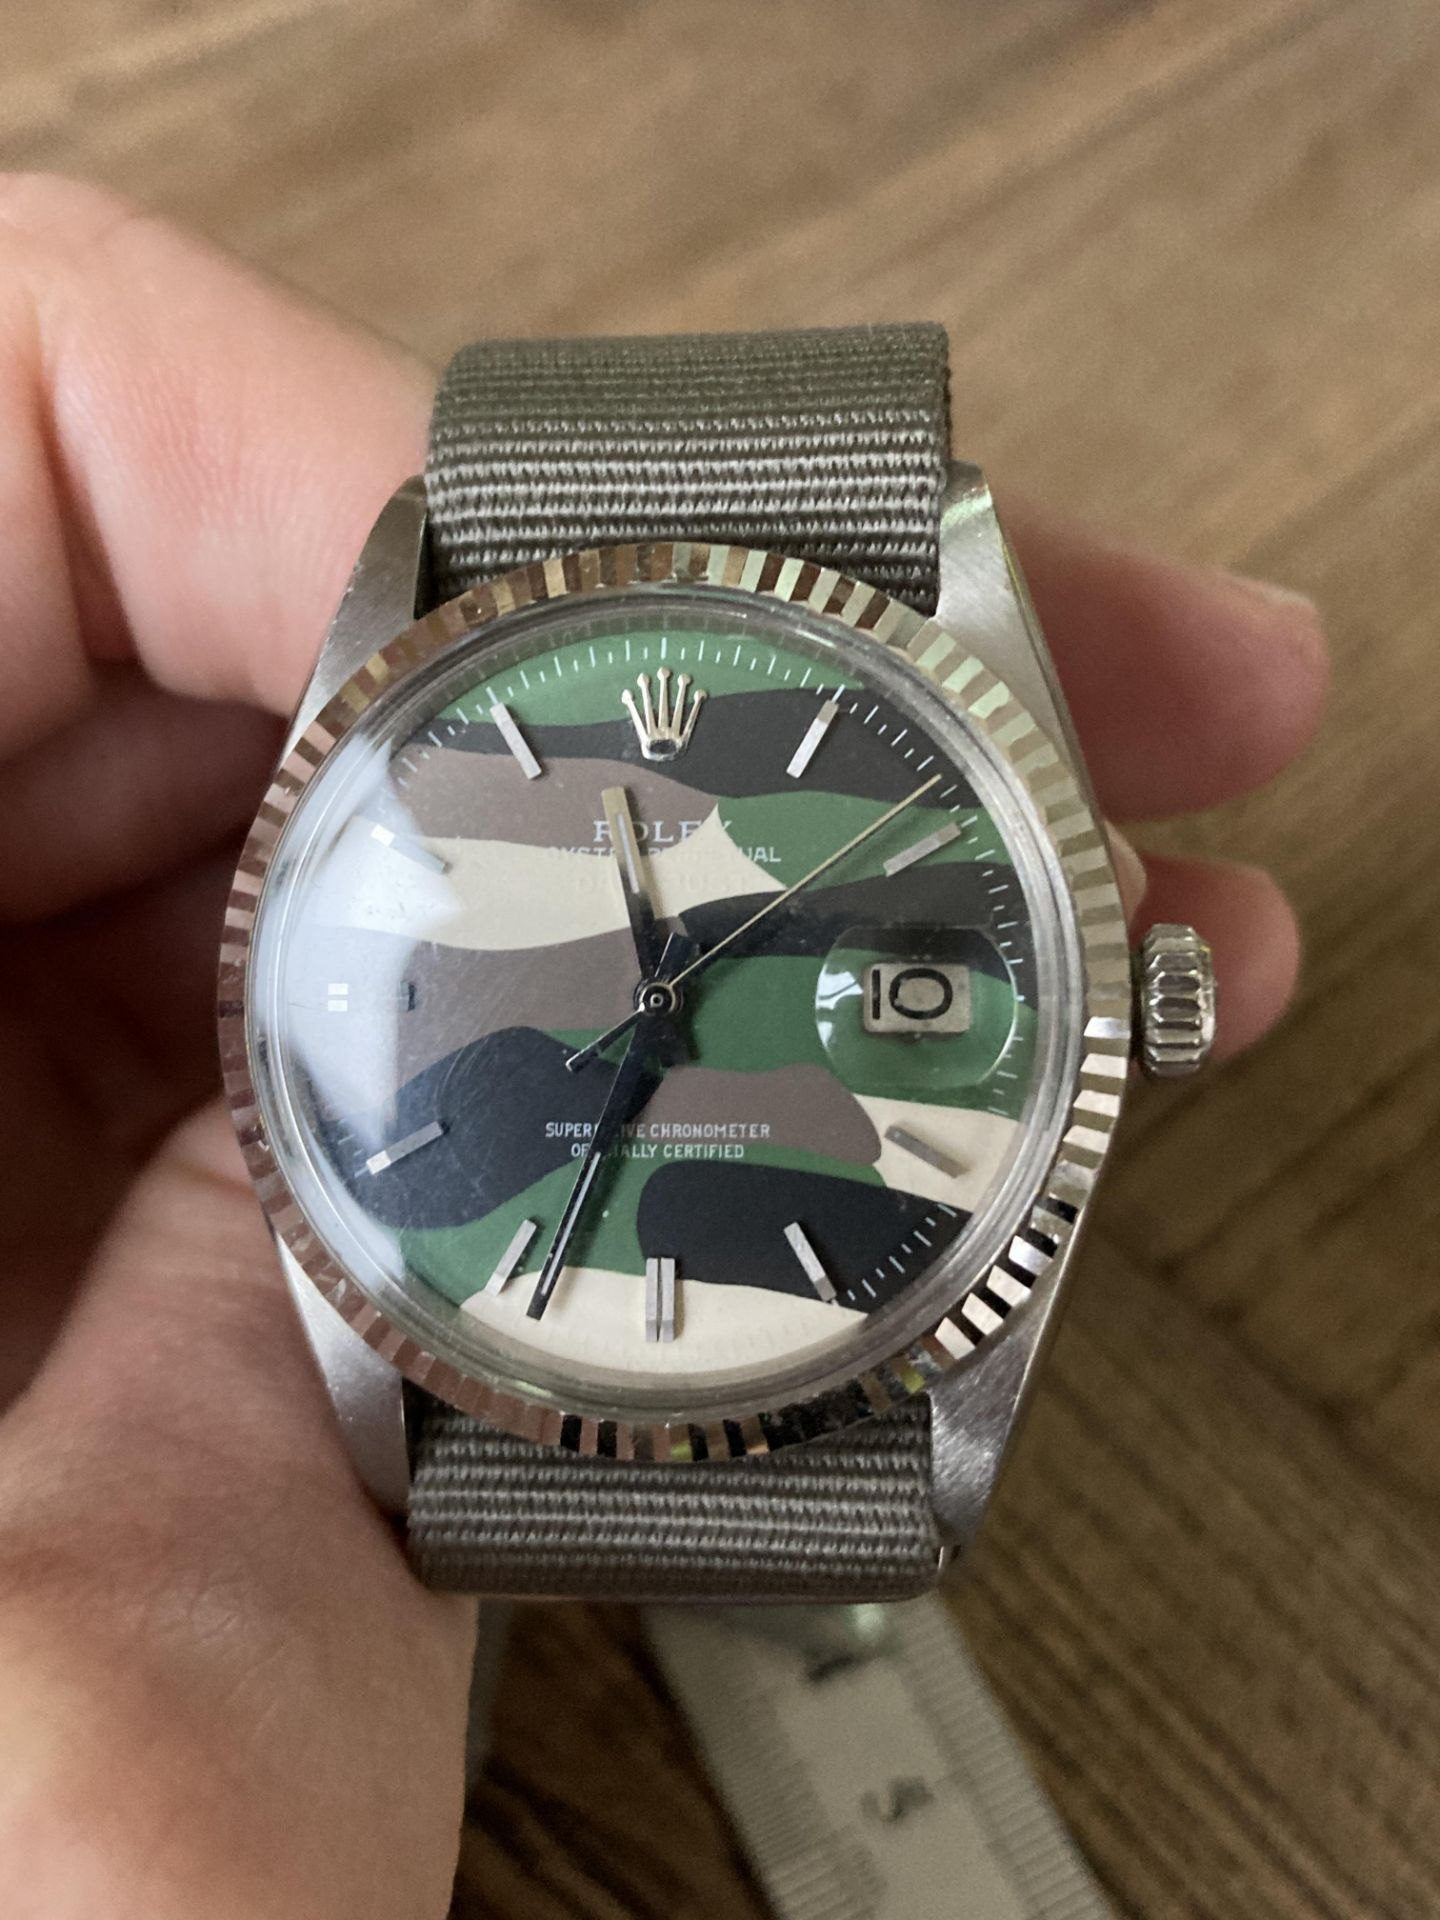 ROLEX DATEJUST 1601 - FLUTED BEZEL, CAMO DIAL - Image 5 of 5